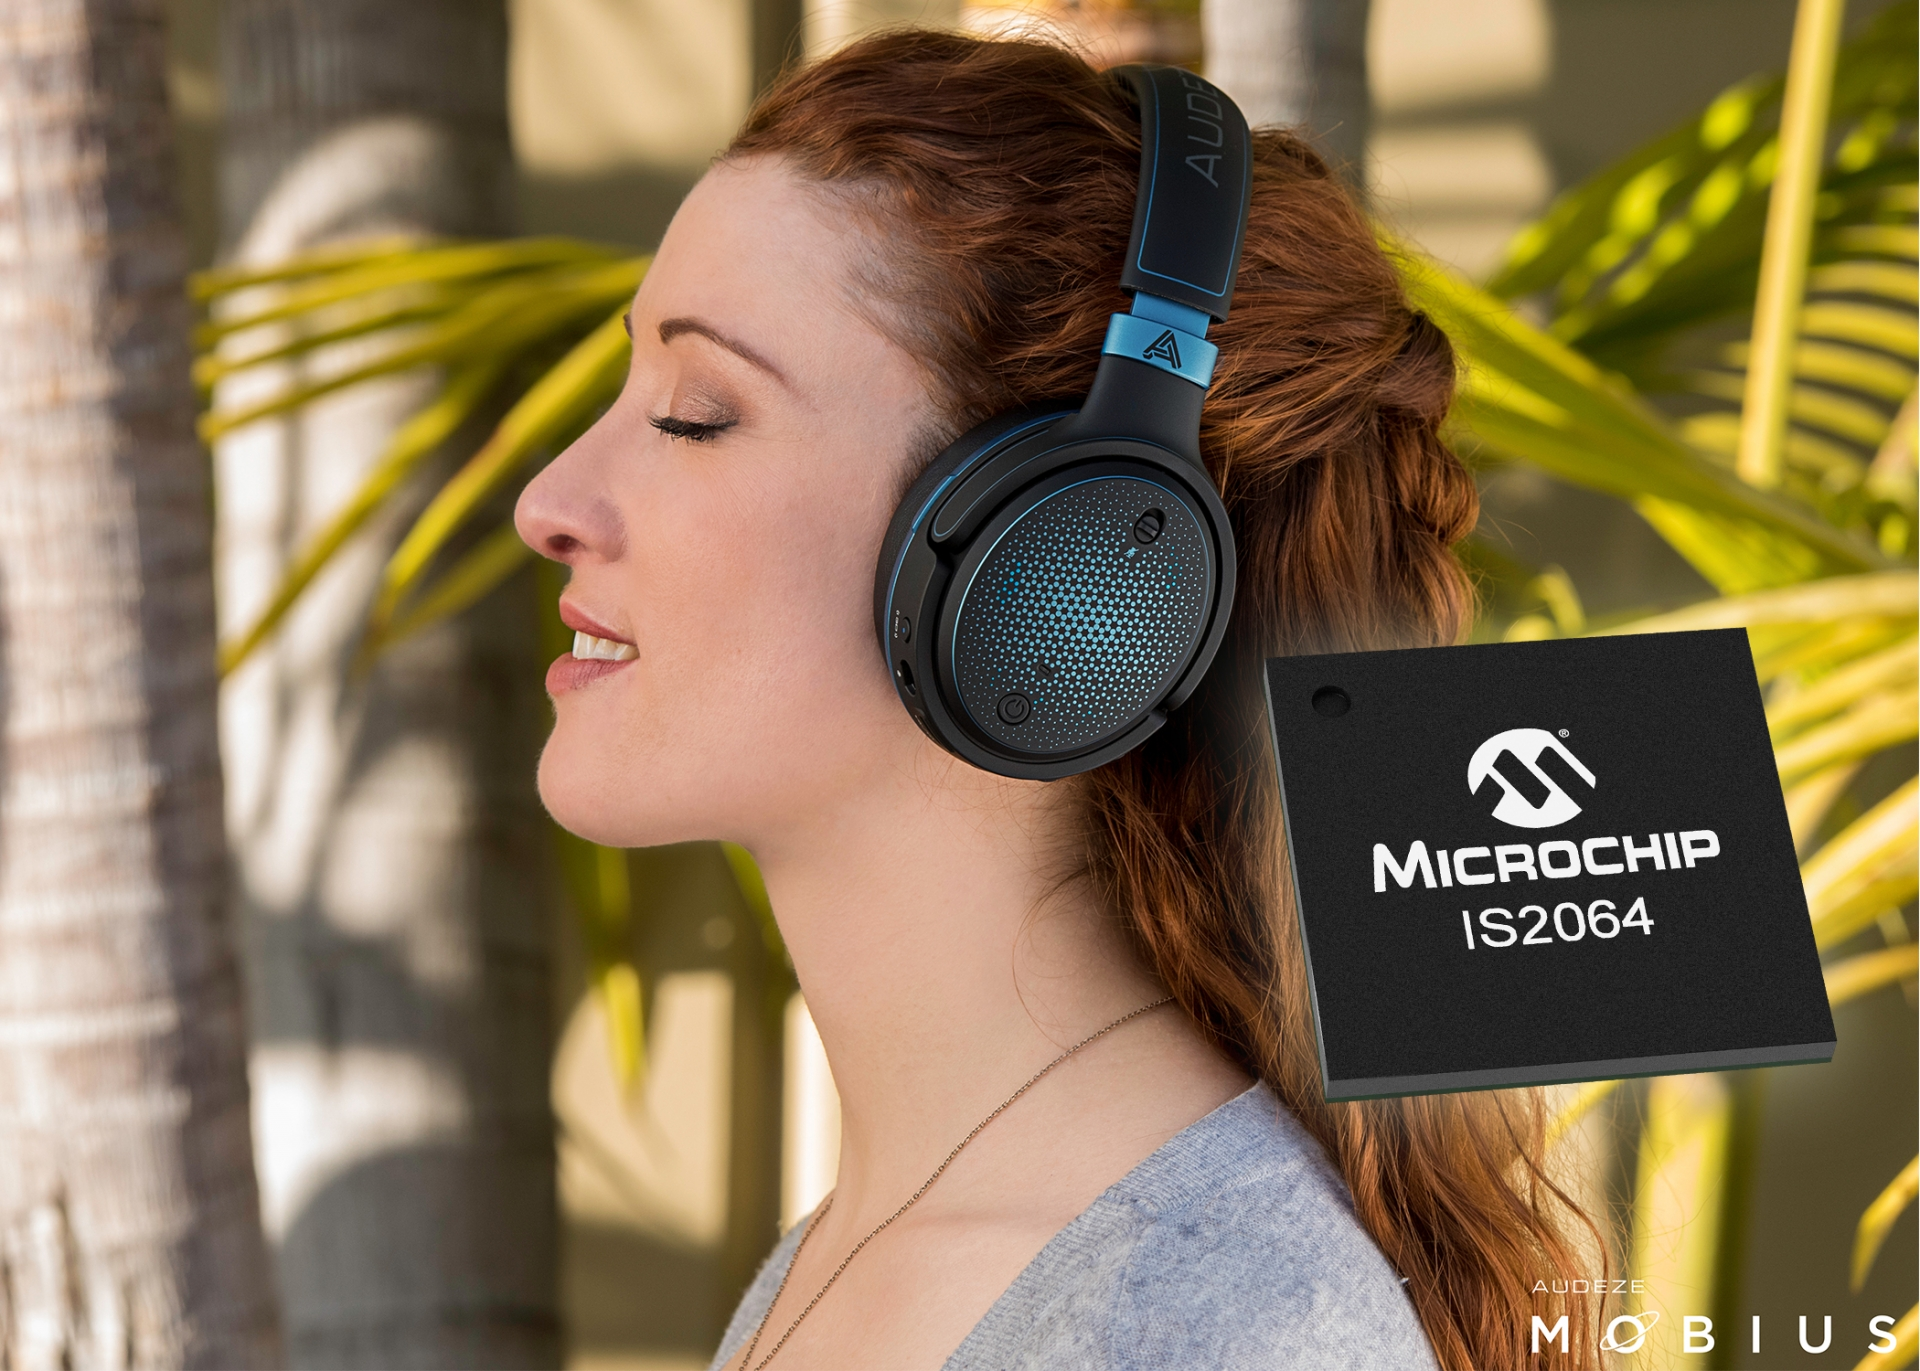 microchip collaborates with sony to create high solution audio devices